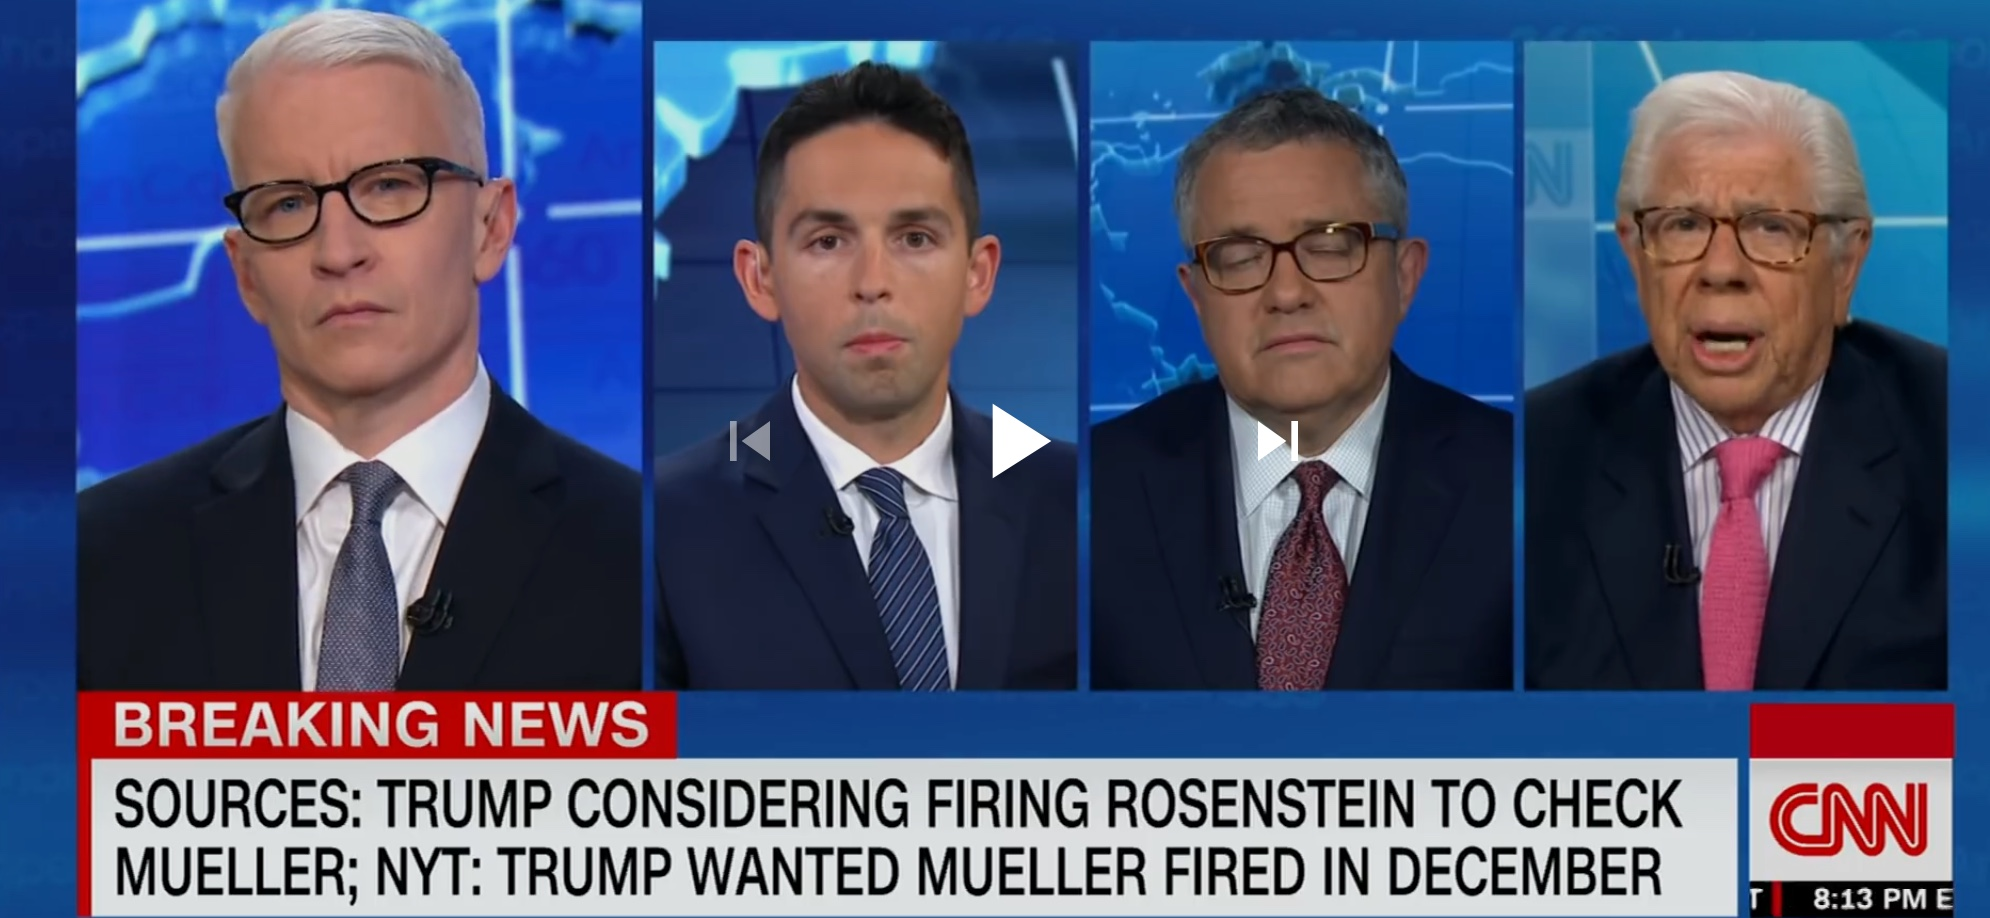 Carl Berstein (far right) is interviews by CNN's Anderson Cooper on Apr. 10, 2018. YouTube screen capture.